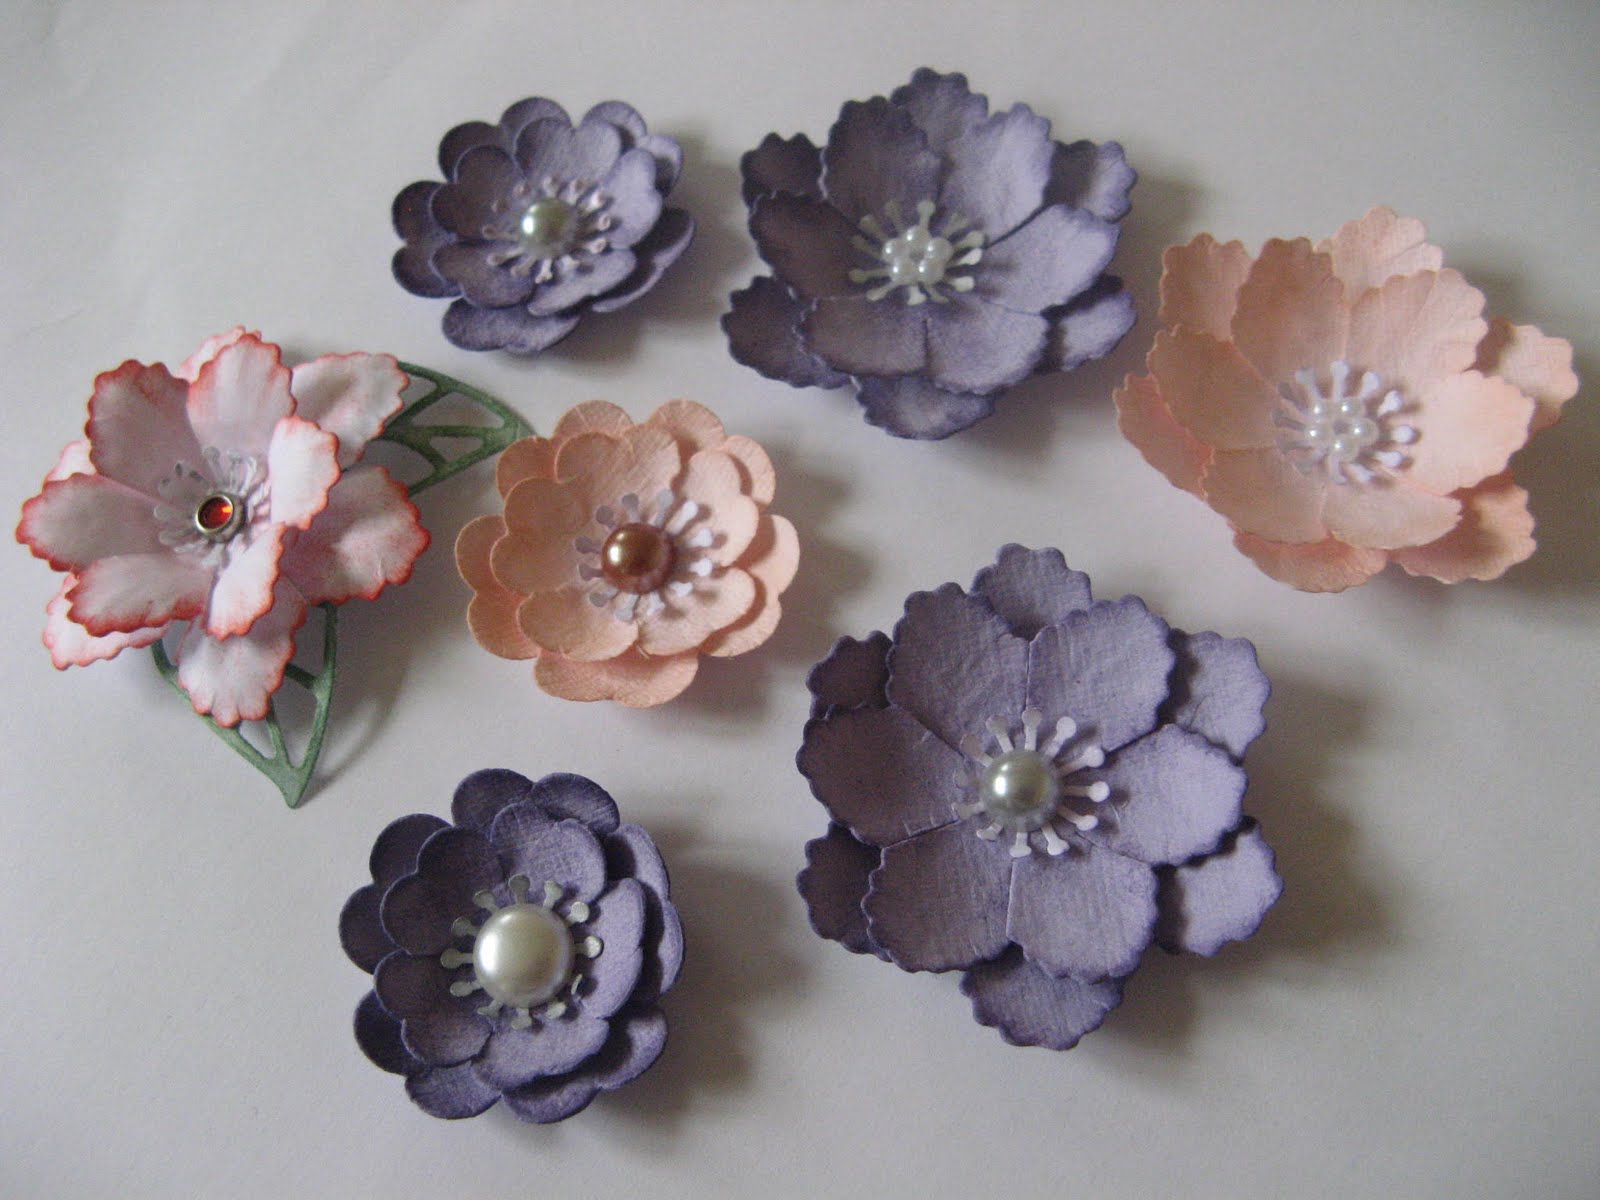 Lacetopdesigns video tutorial prima inspired paper flowers using lacetopdesigns video tutorial prima inspired paper flowers using marianne d creatables flower fantasy and flora 1 mightylinksfo